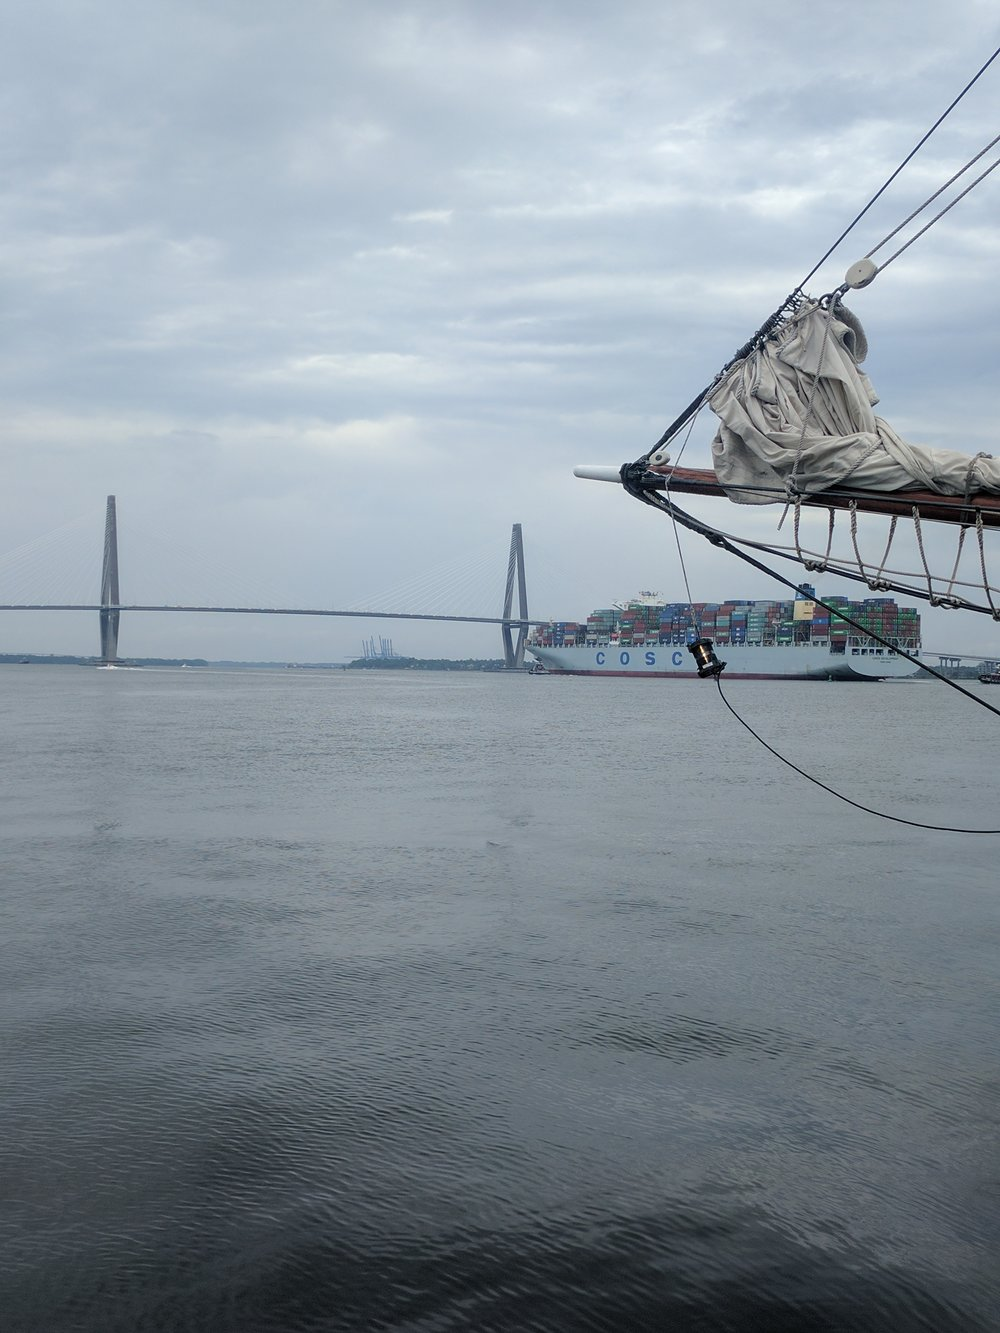 DevelopmentApproachingRavenelBridge4.jpg